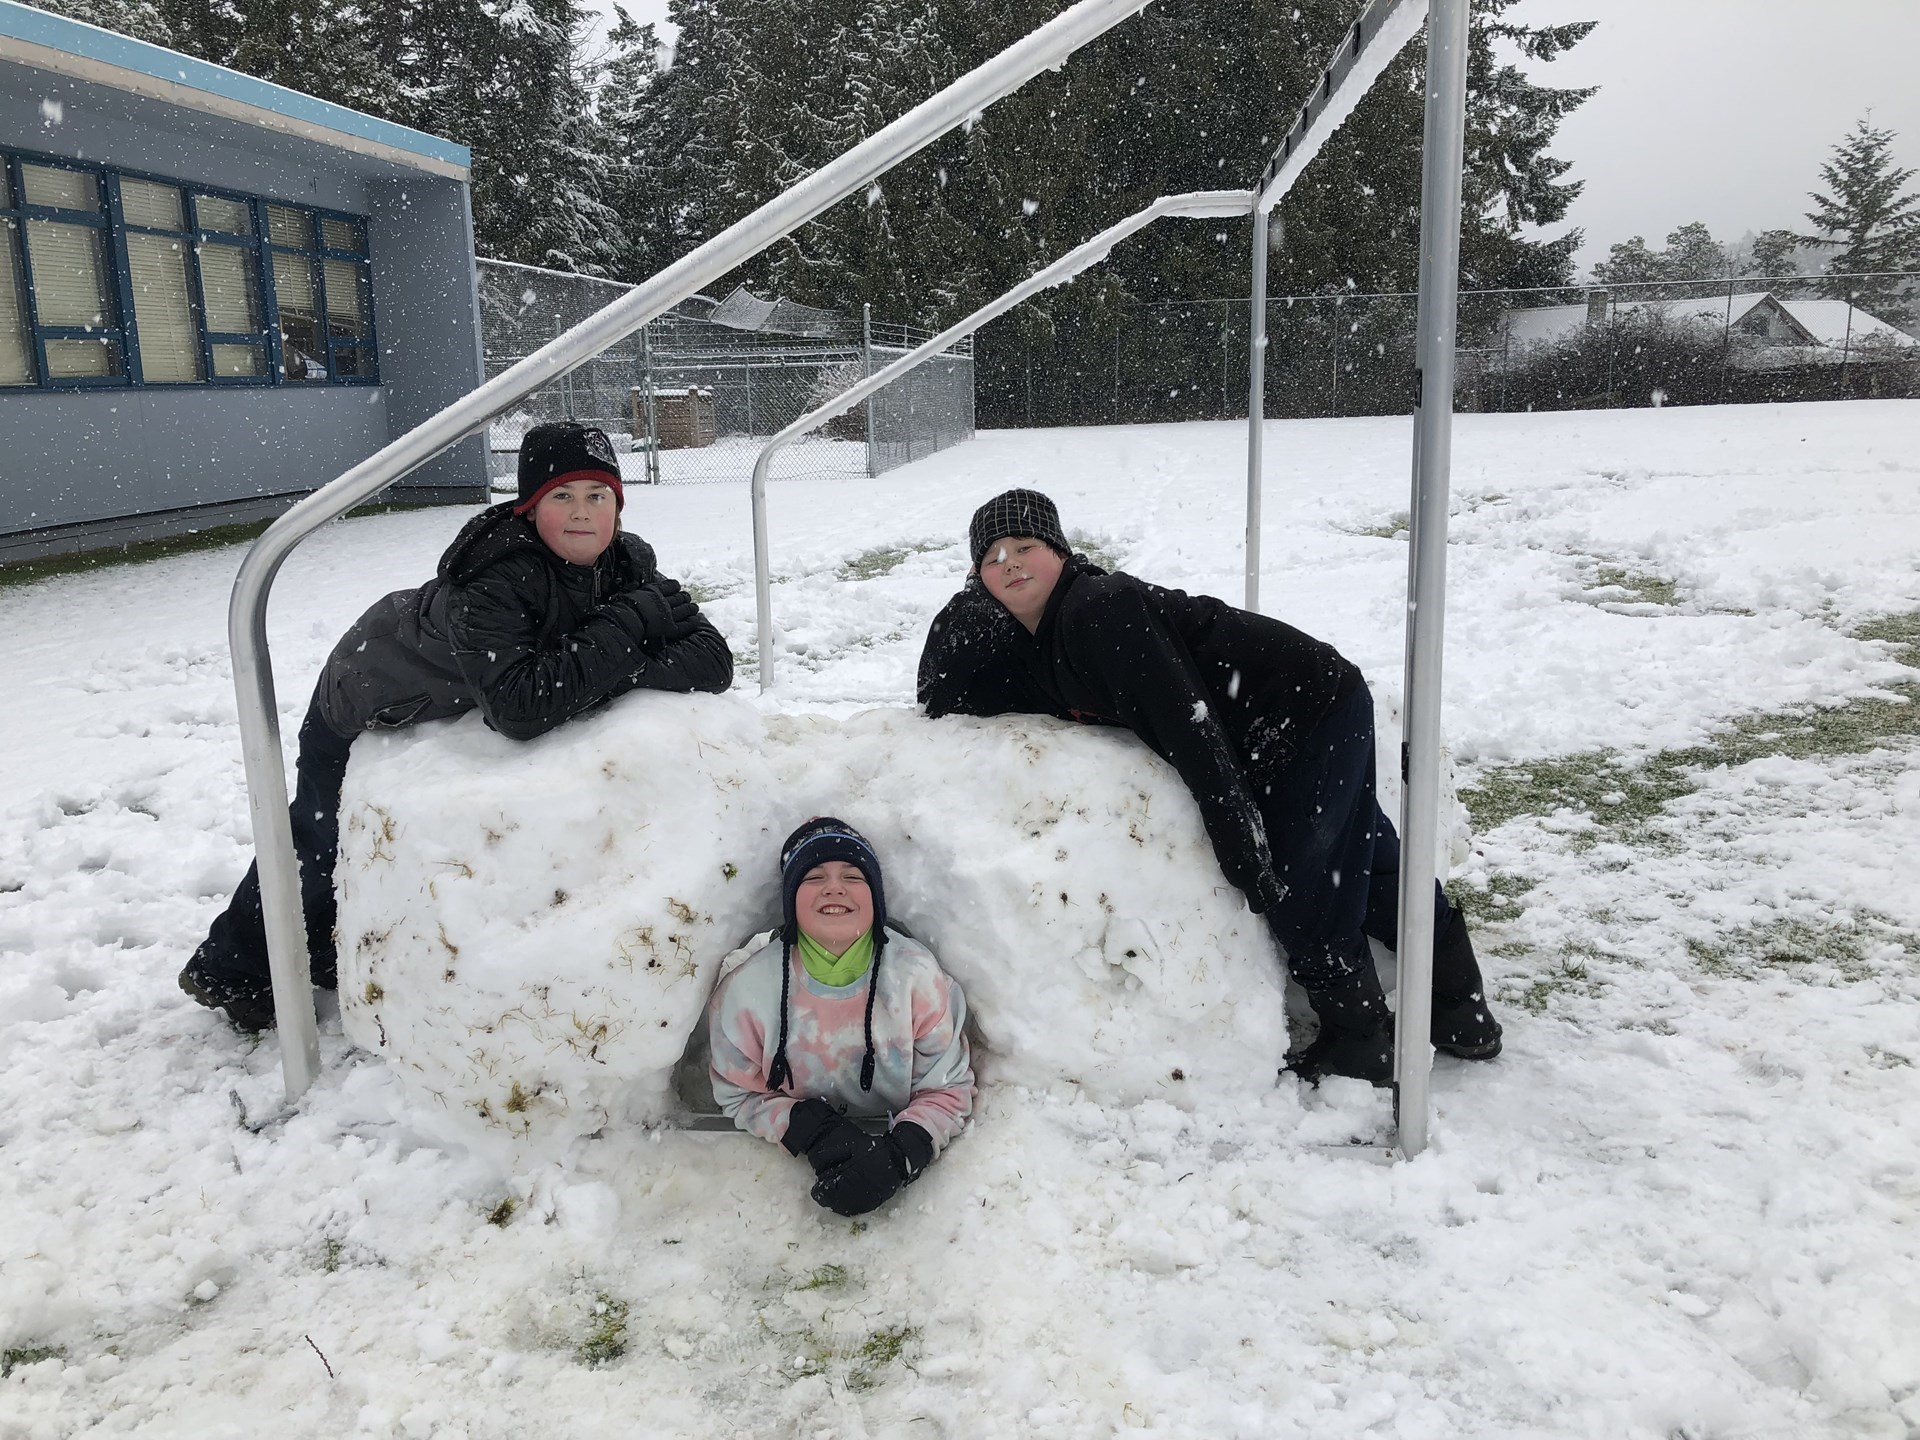 More Snow Day Fun at Texada Elementary